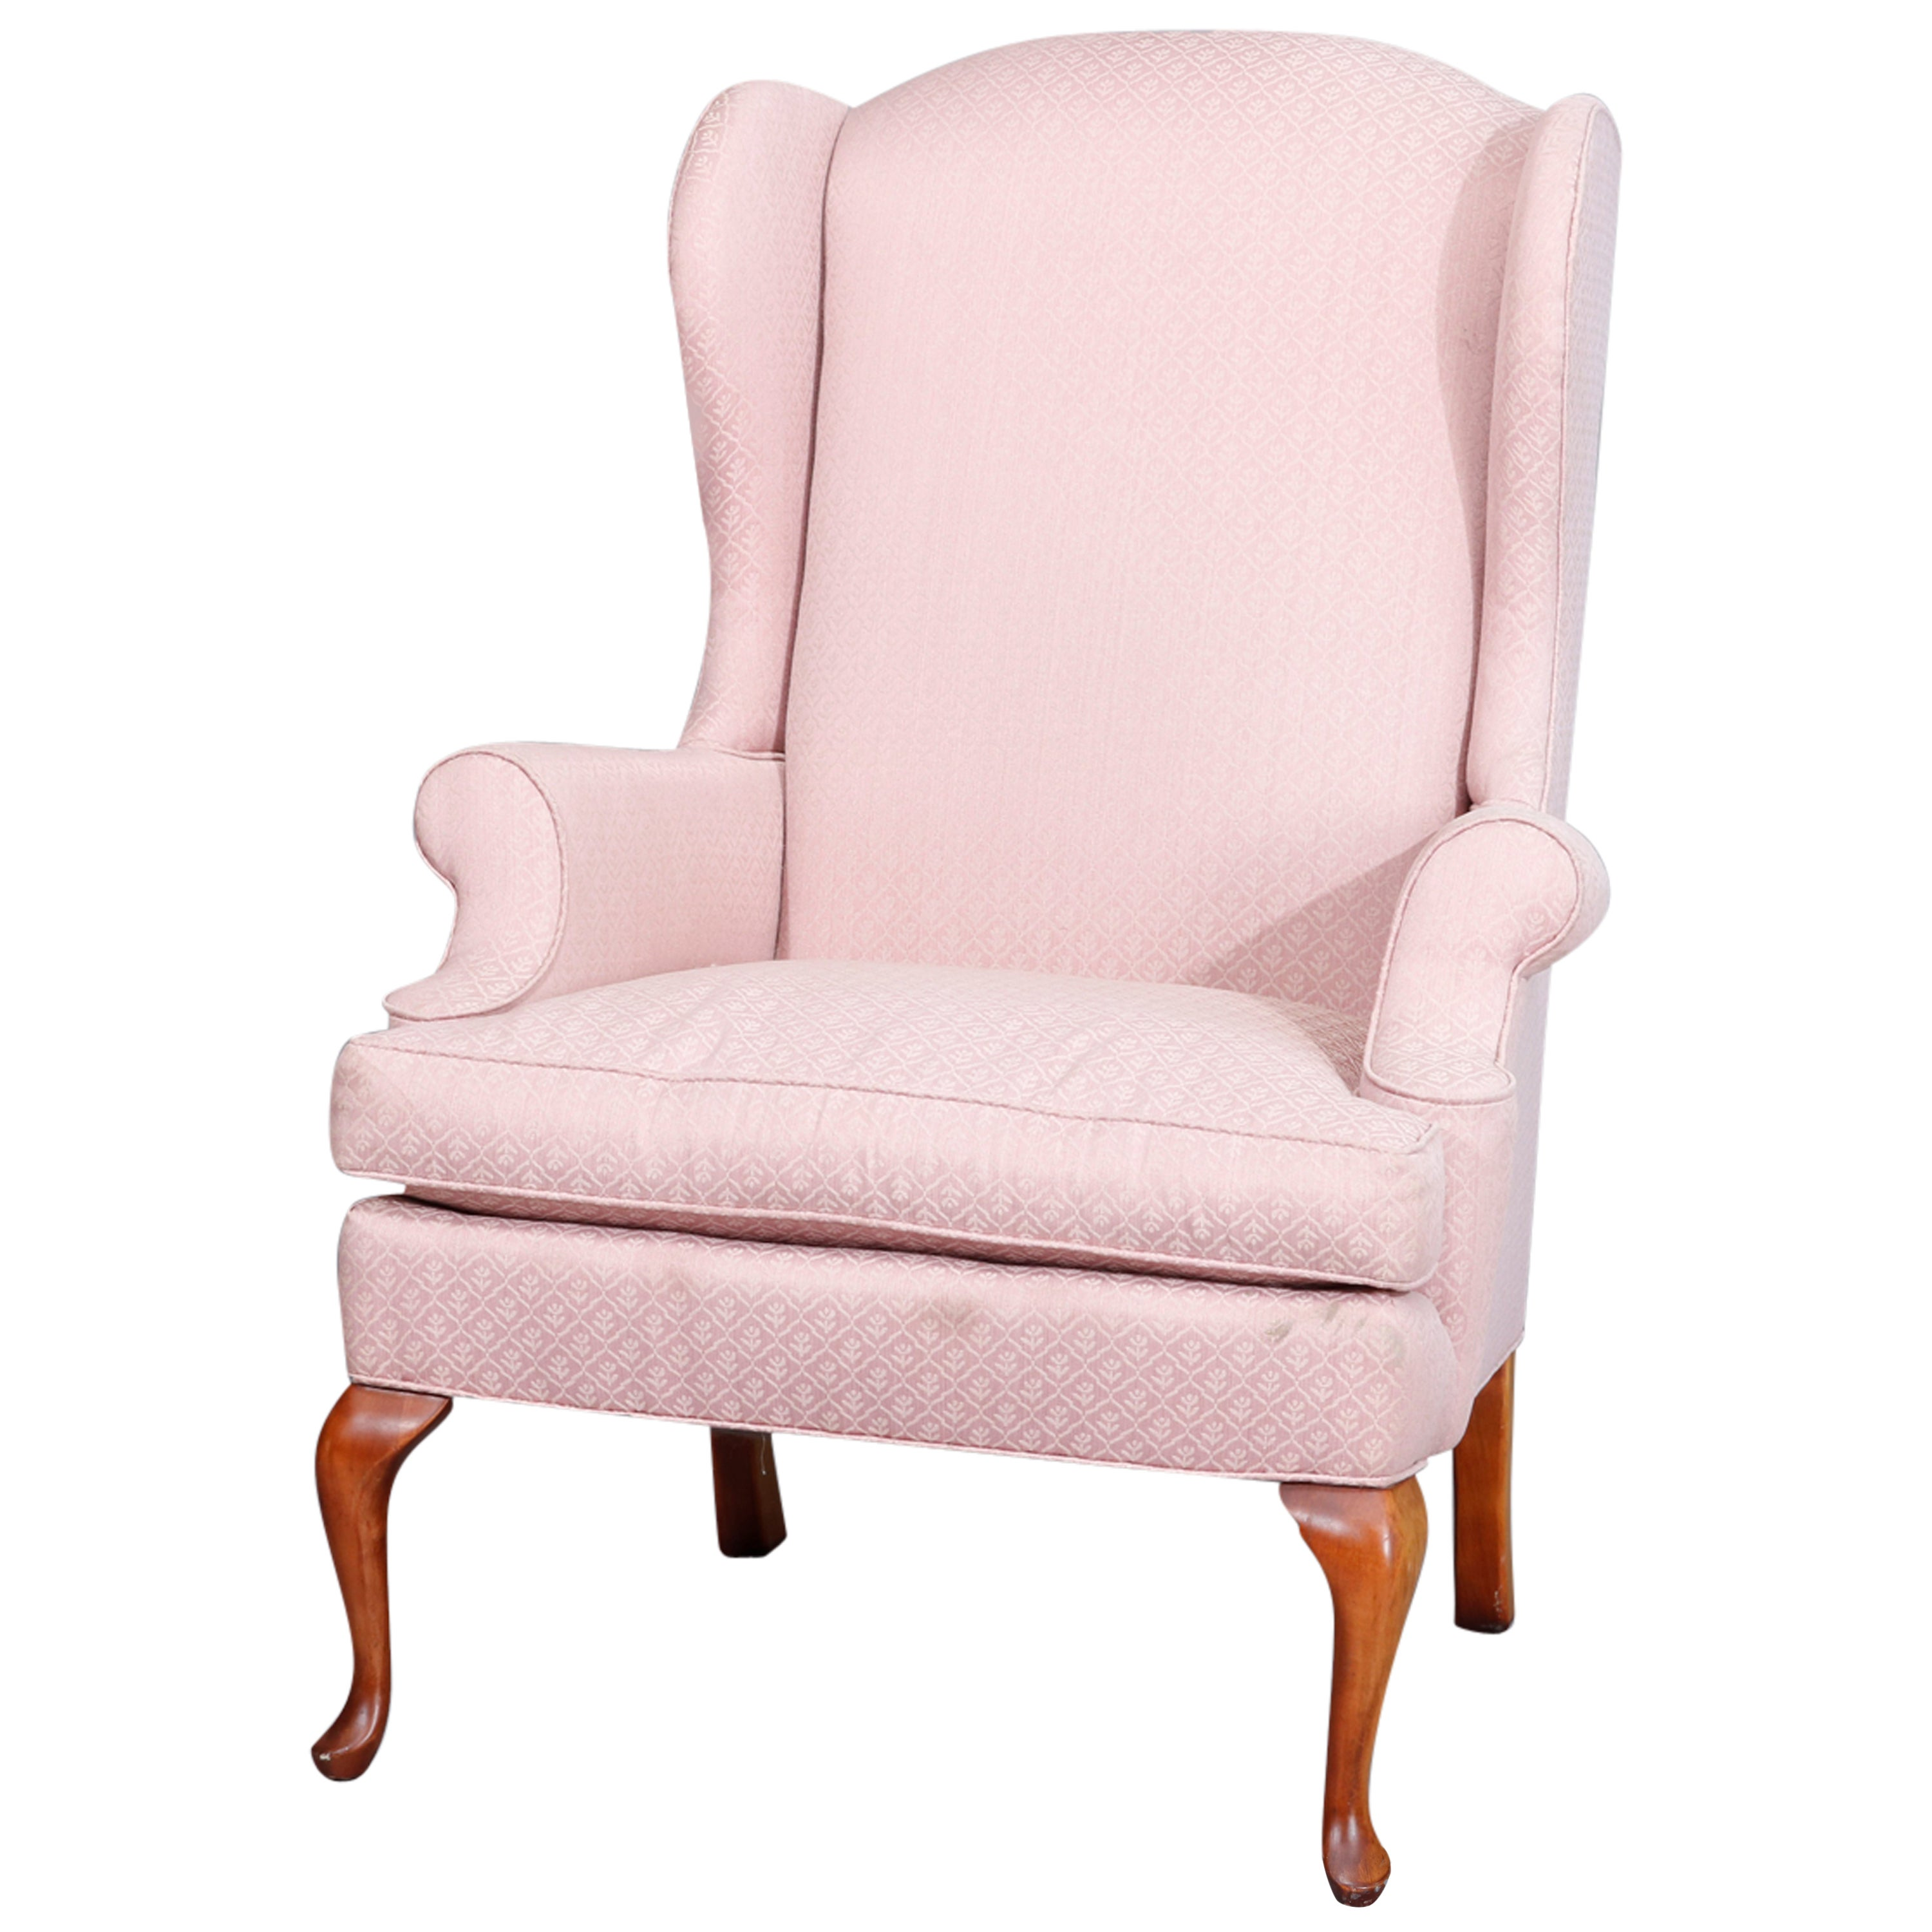 Queen Anne Style Mahogany Upholstered Wingback Chair by Laine, 20th Century